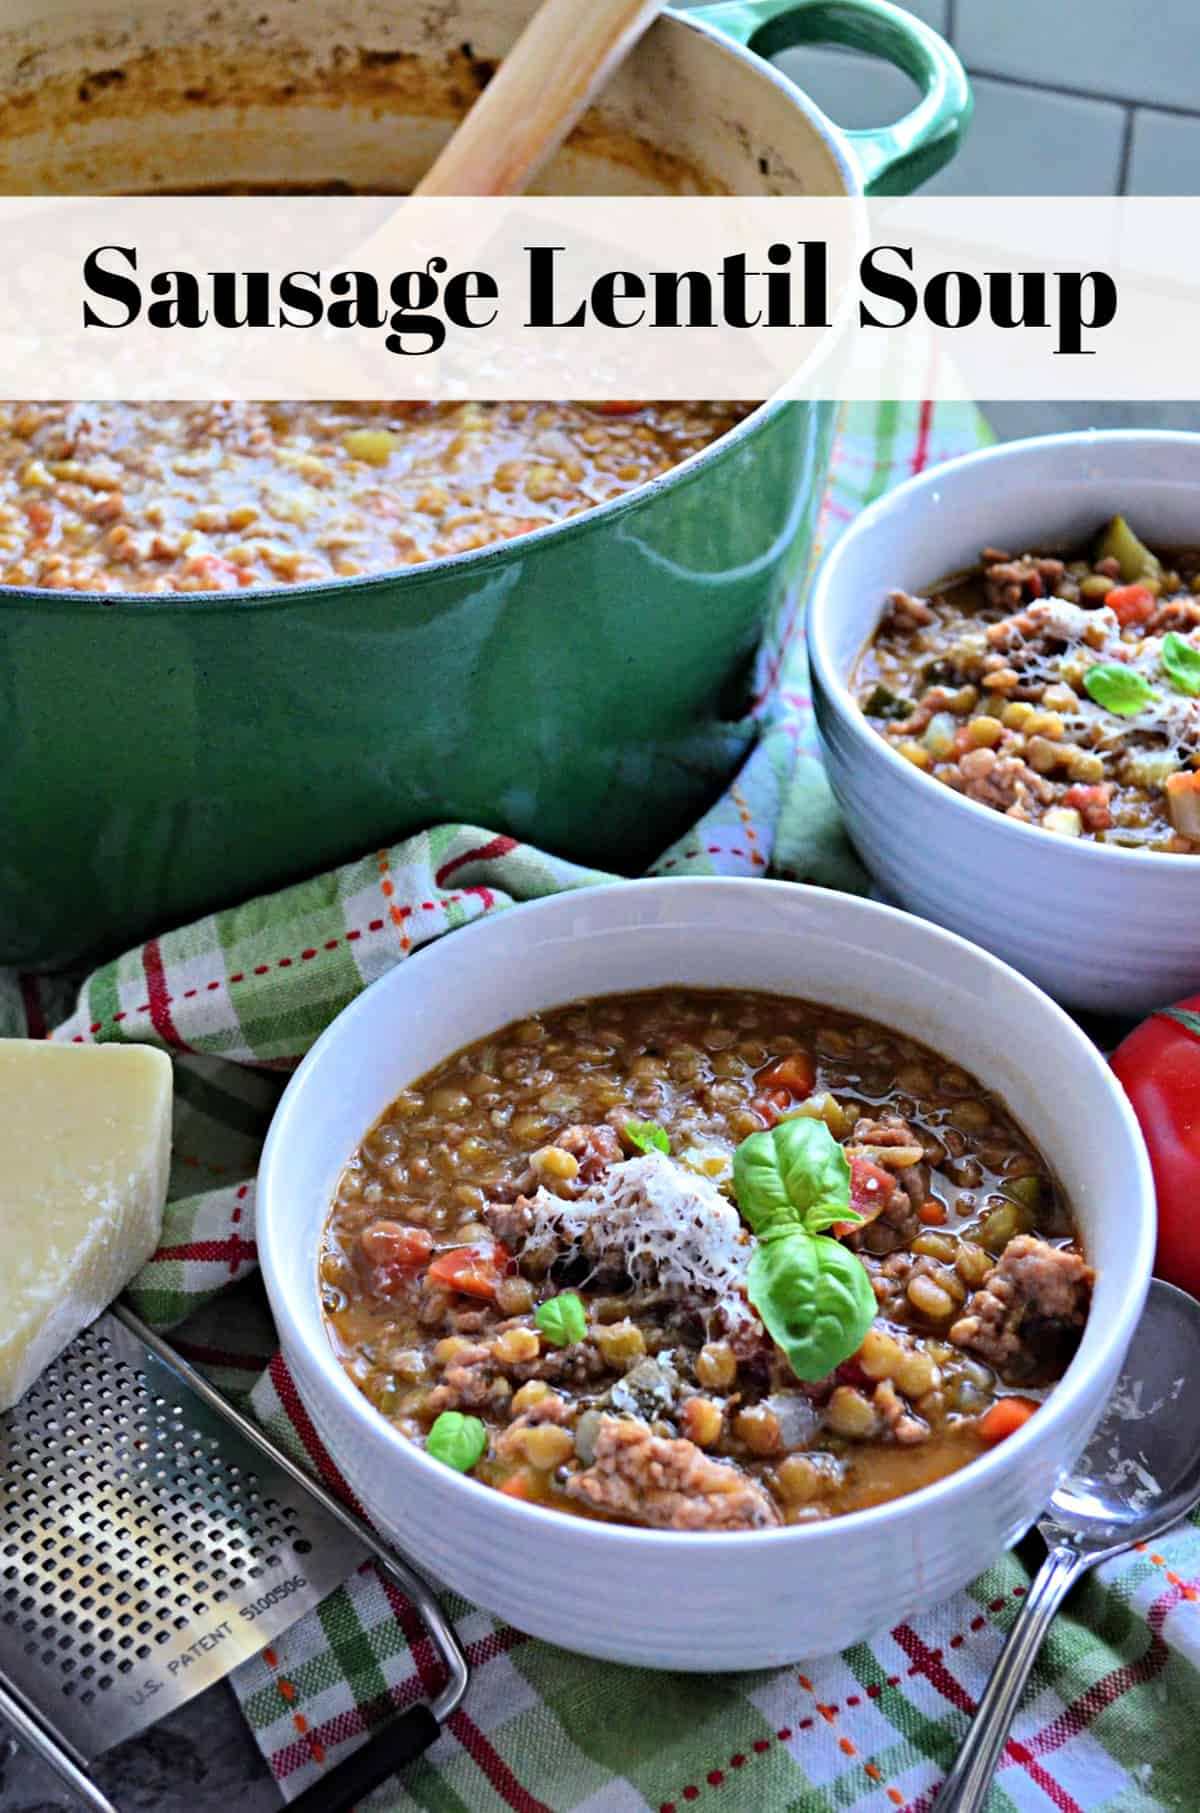 two bowls of Sausage Lentil Soup next to pot of remaining soup with title text on photo.